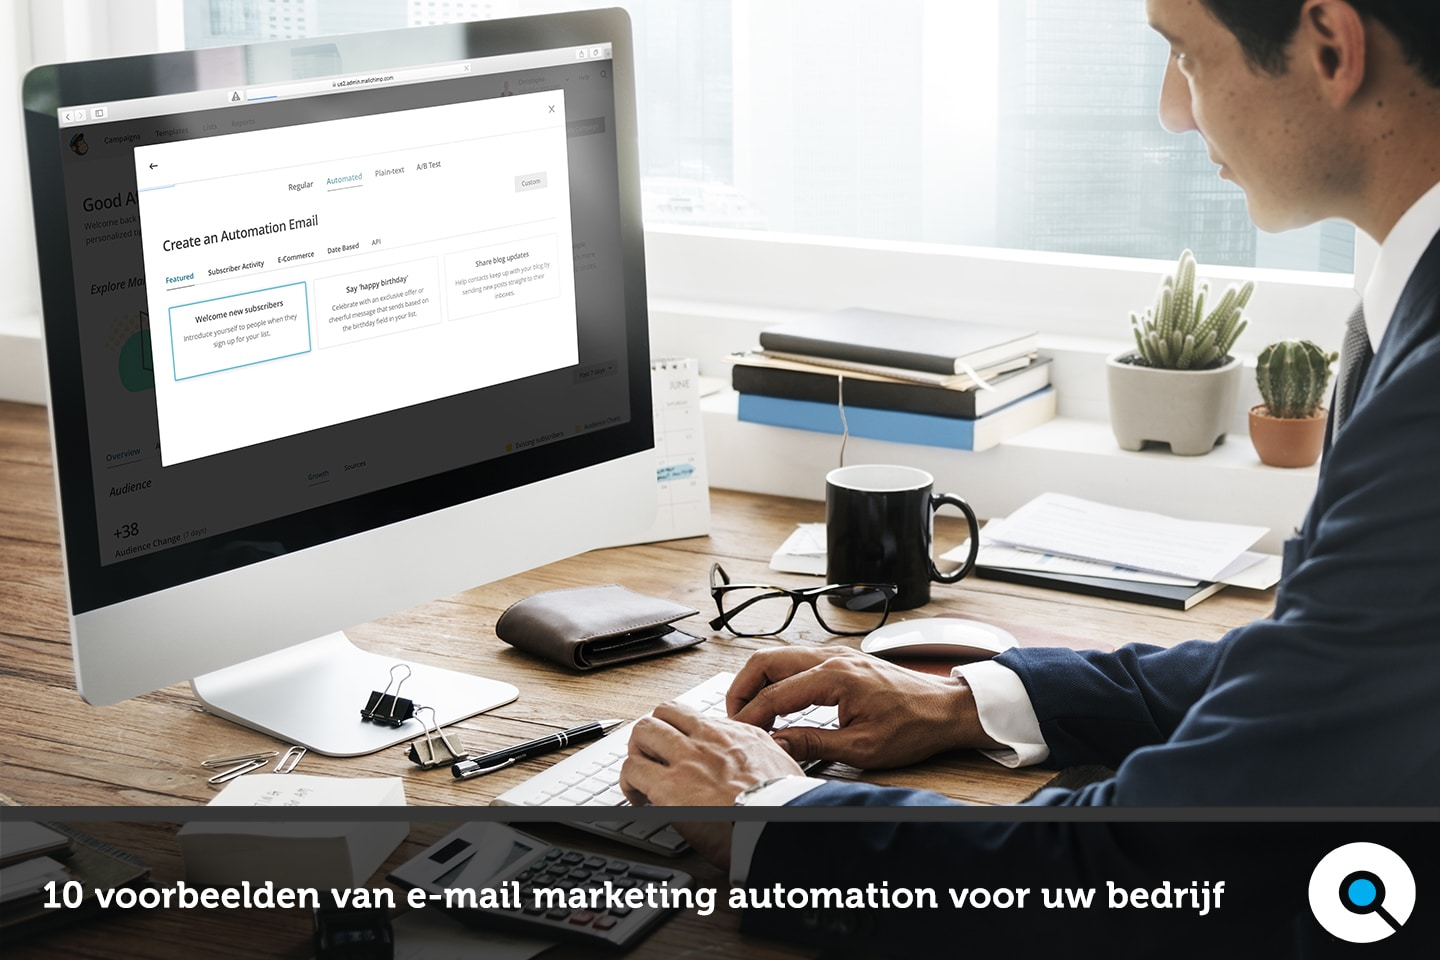 E-mail marketing automation voorbeelden - Lincelot